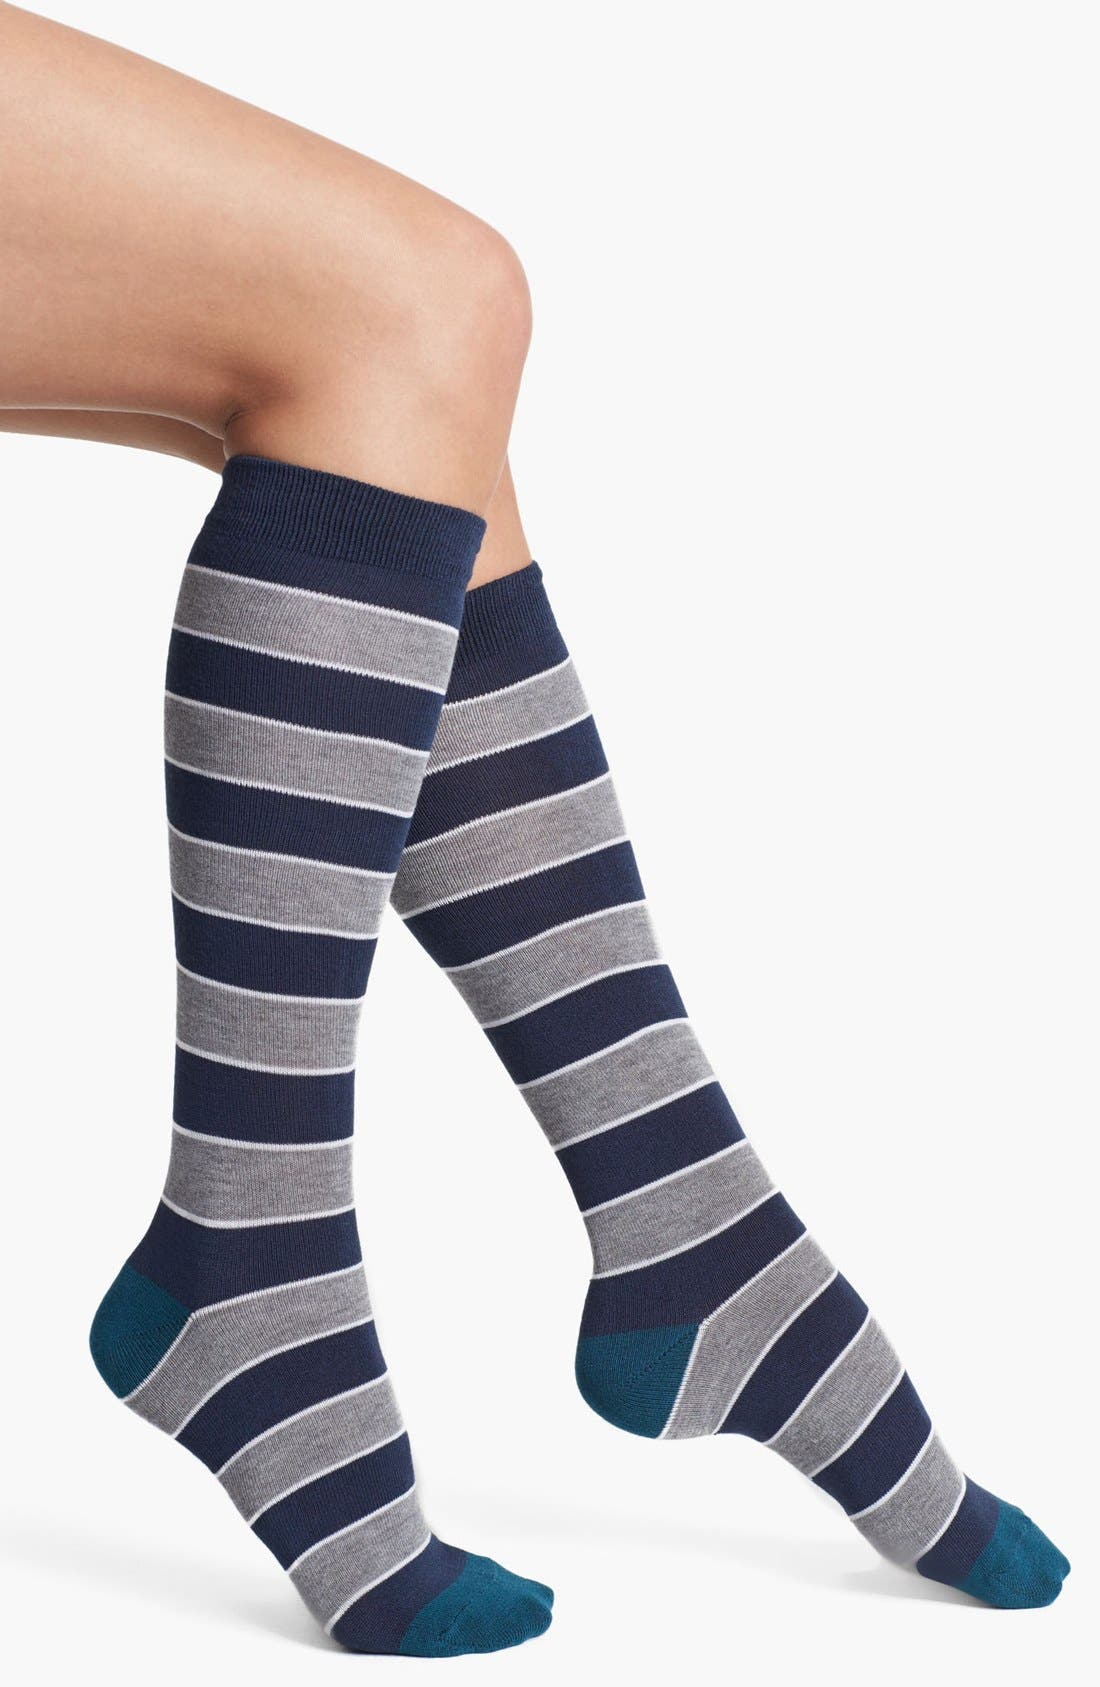 Alternate Image 1 Selected - Nordstrom 'Soft Touch' Stripe Knee High Socks